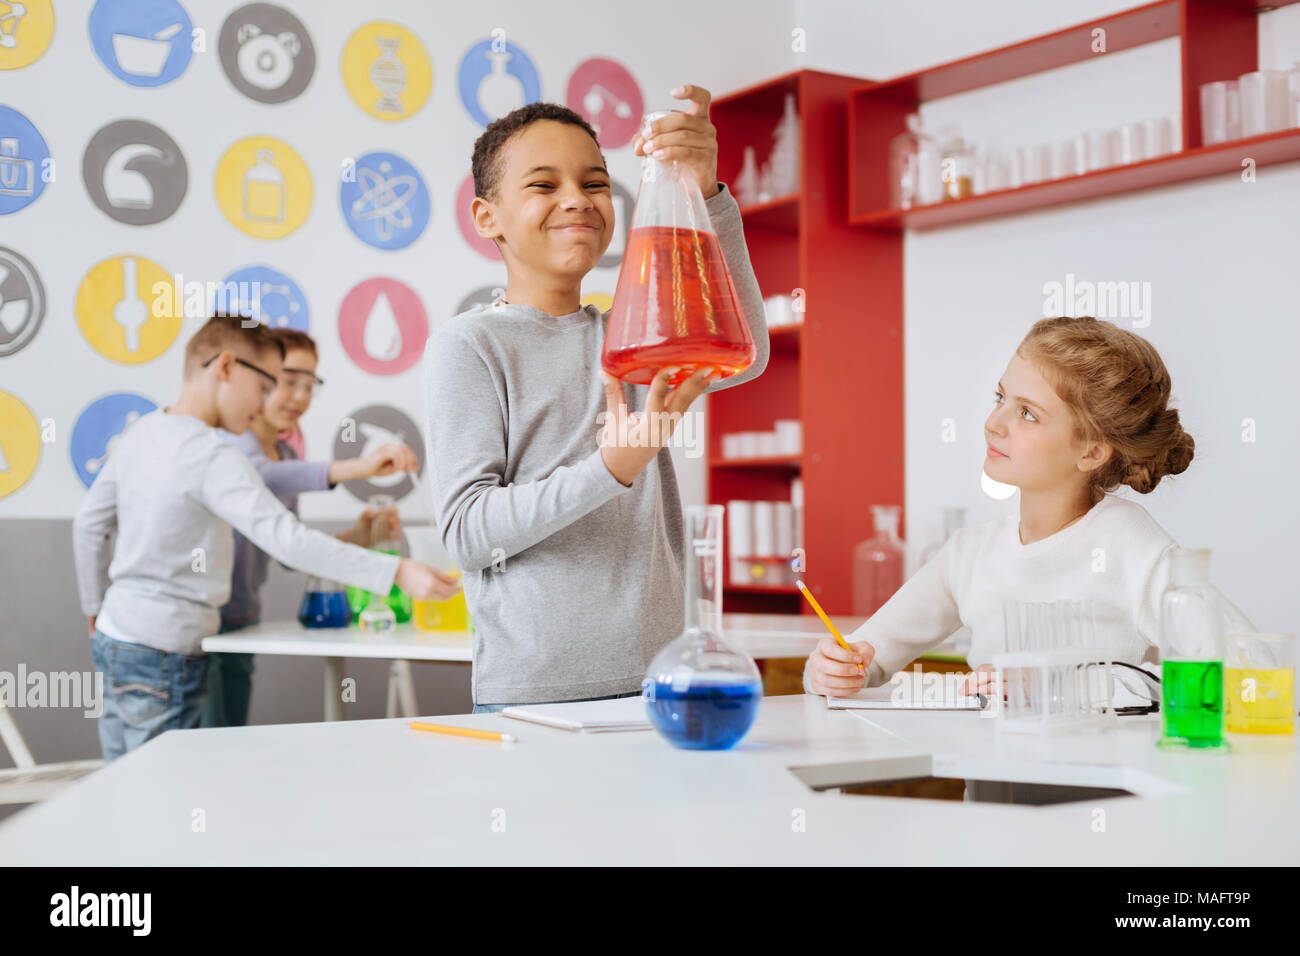 Upbeat boy checking out flask with red chemical - Stock Image